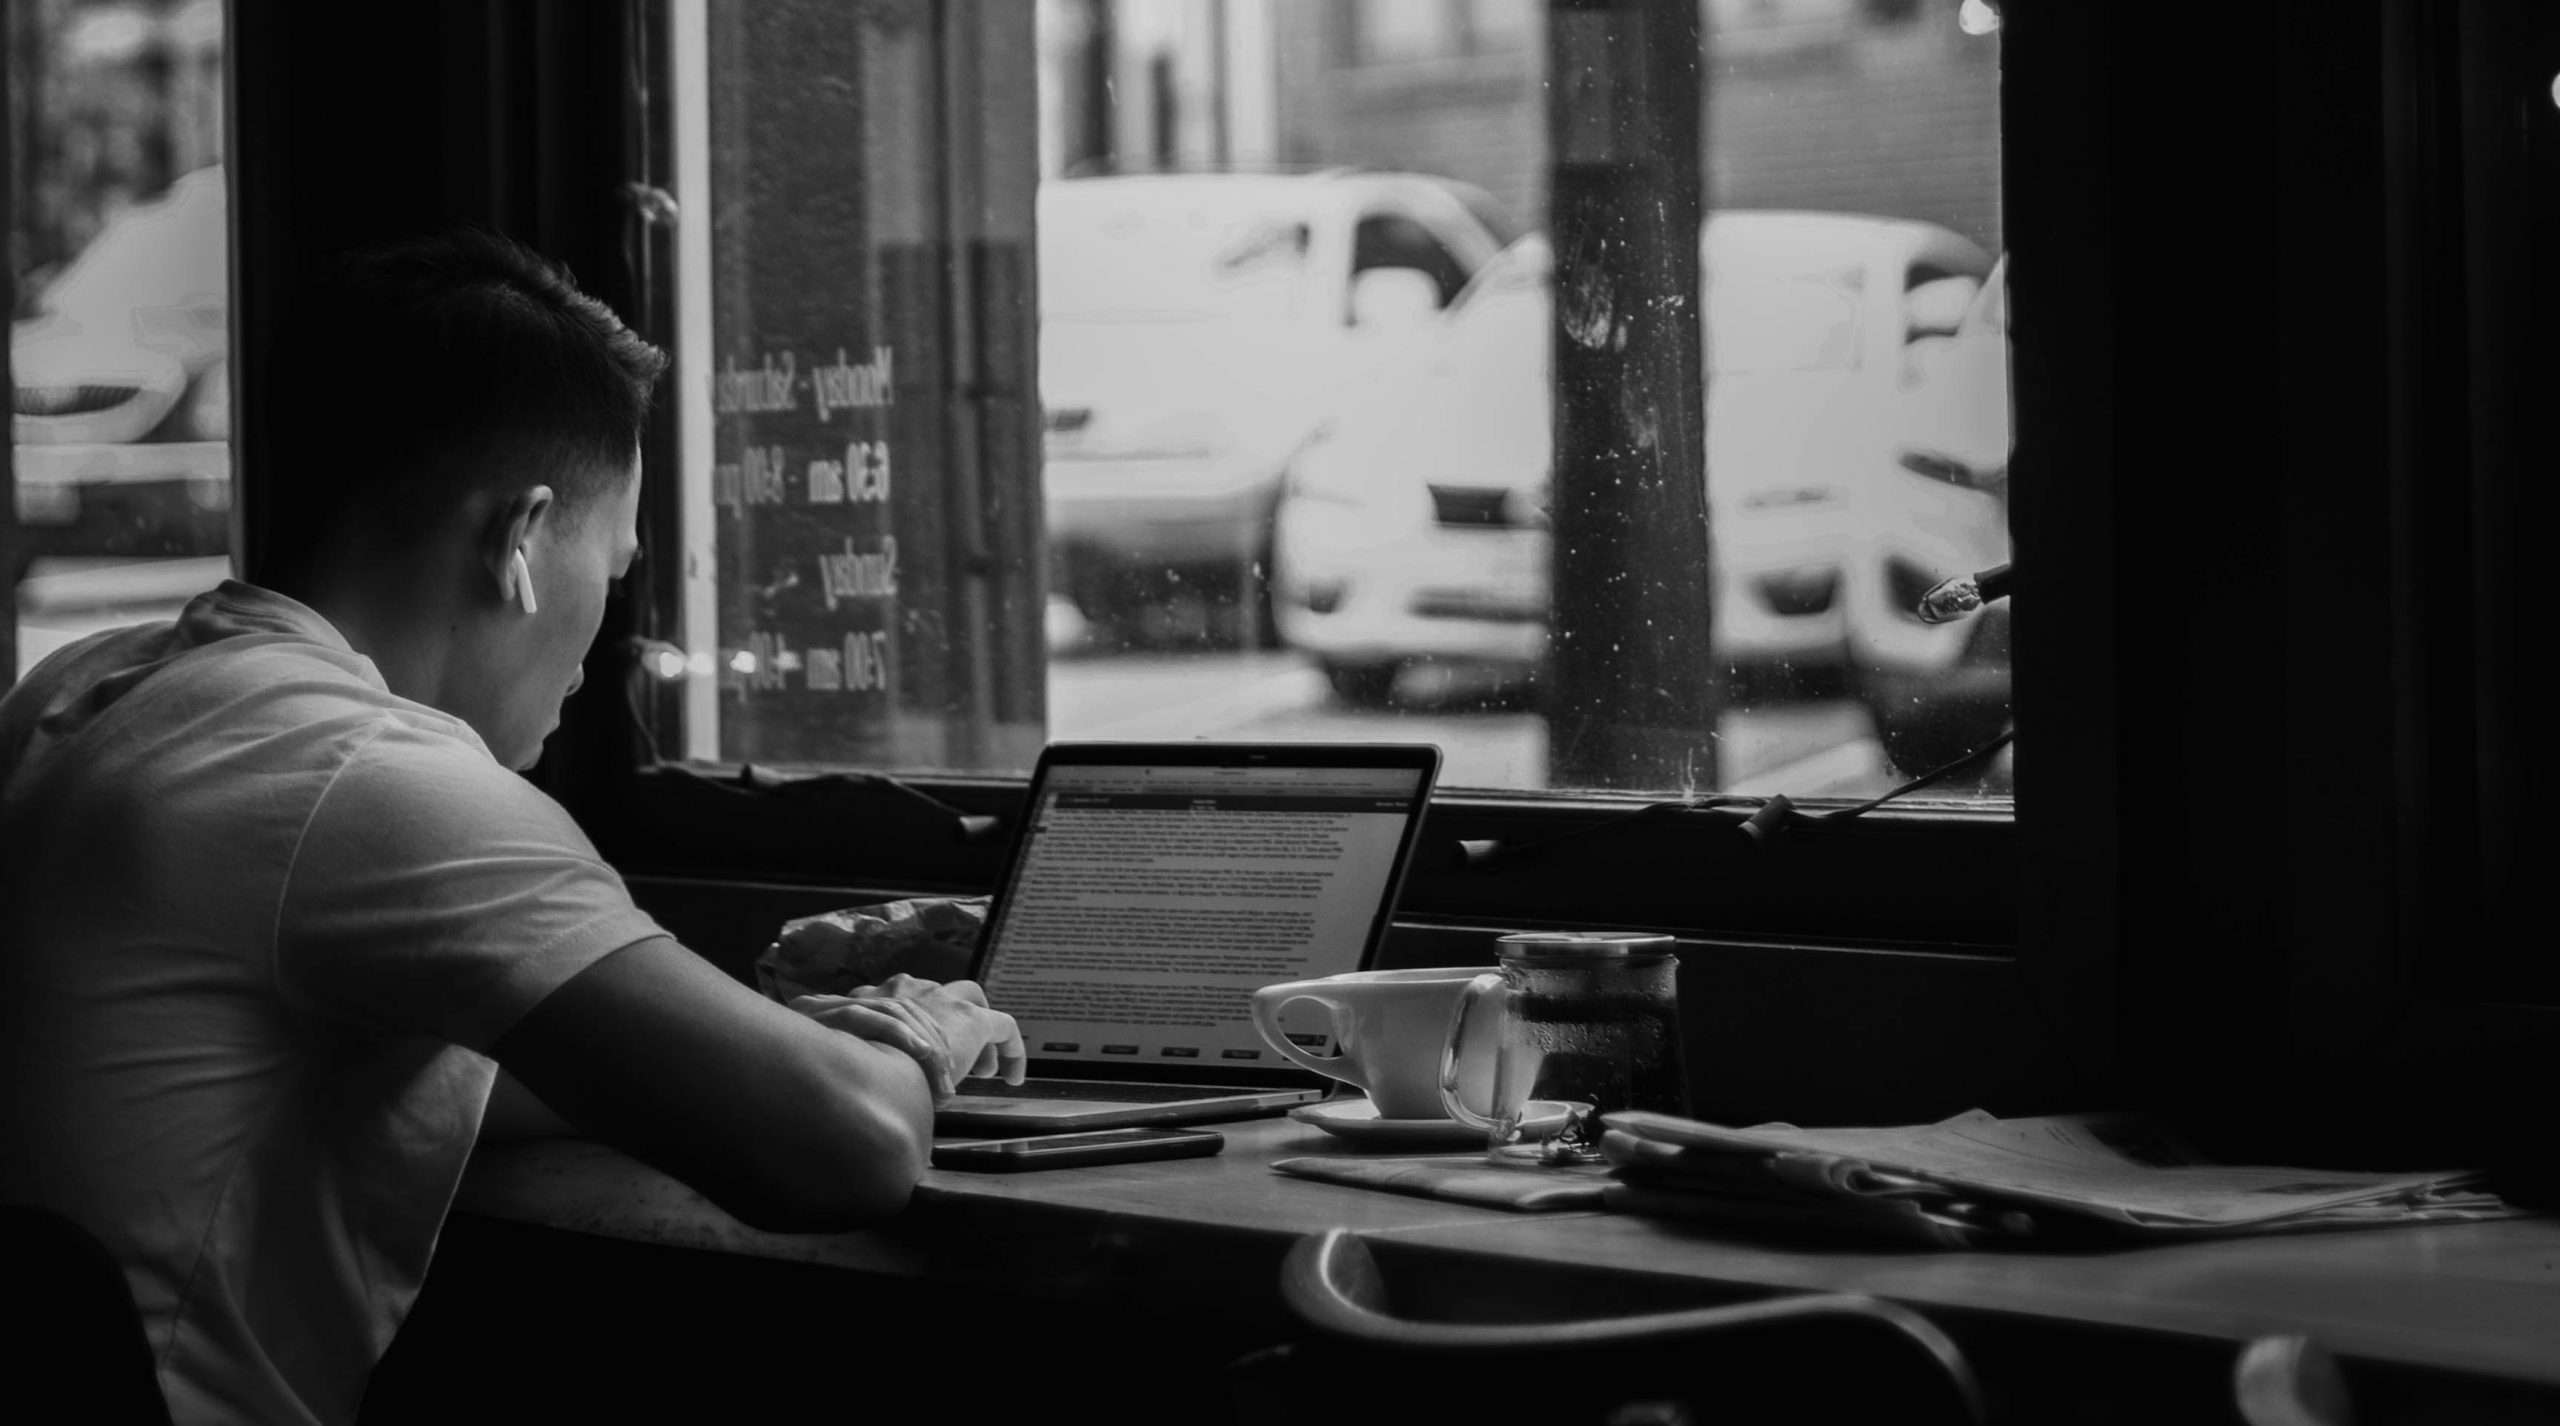 black and white image of person using laptop